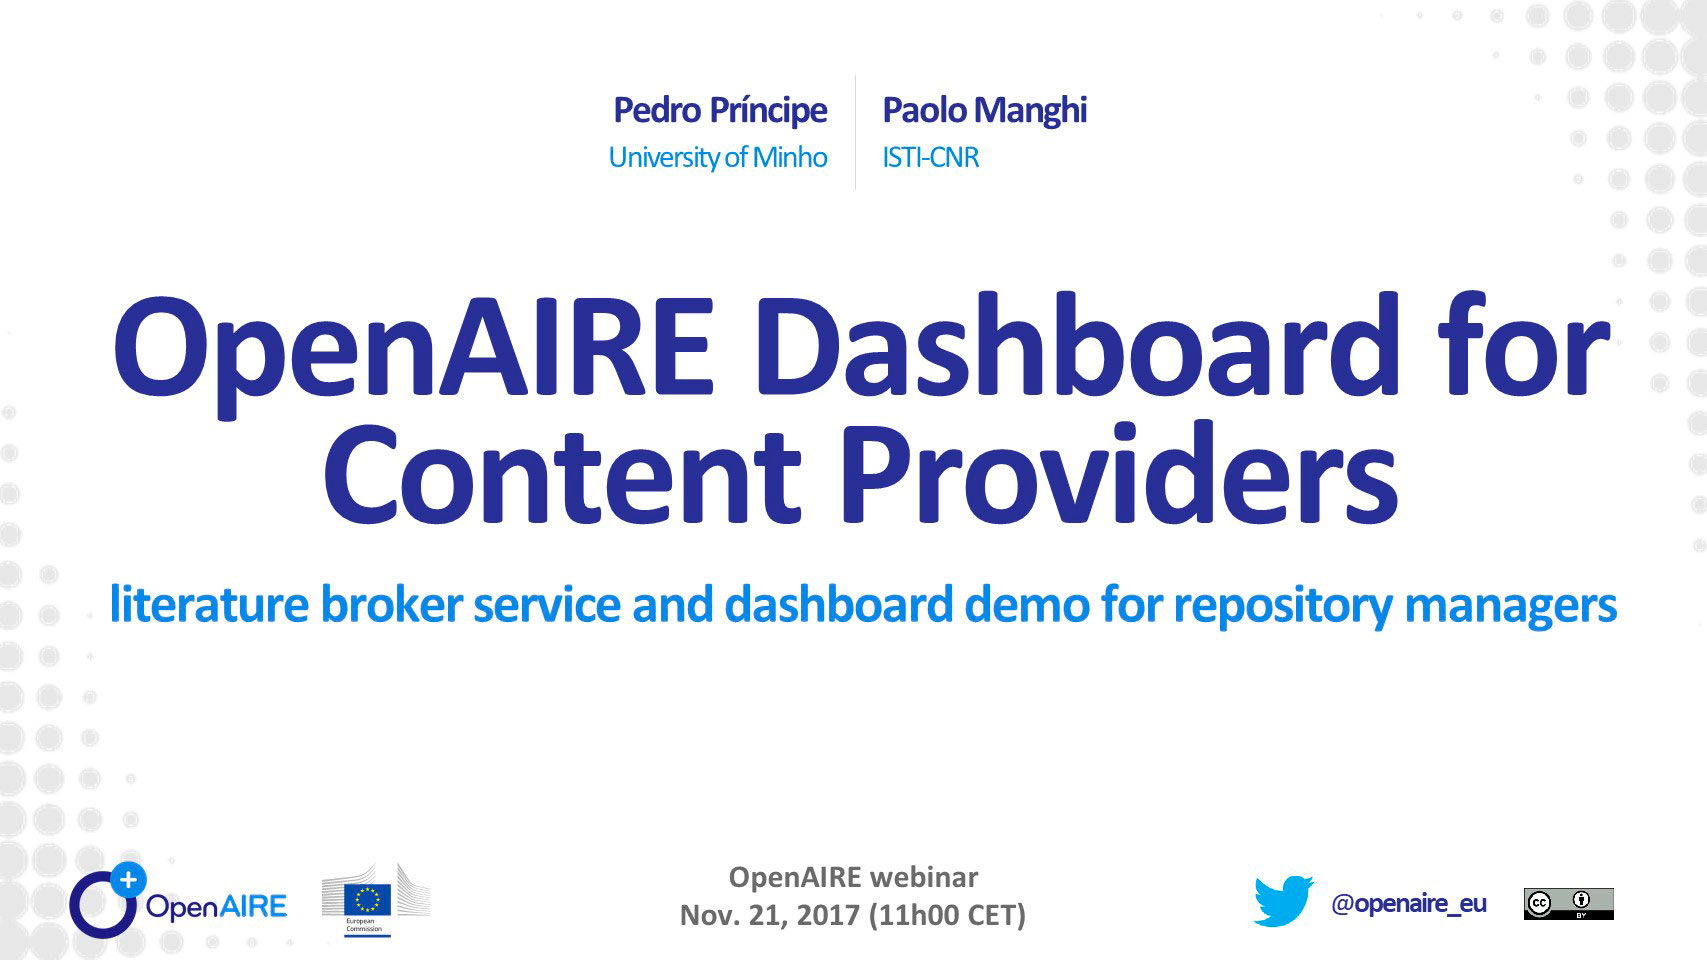 OpenAIRE Dashboard for Content Providers: literature broker service and dashboard demo for repository managers